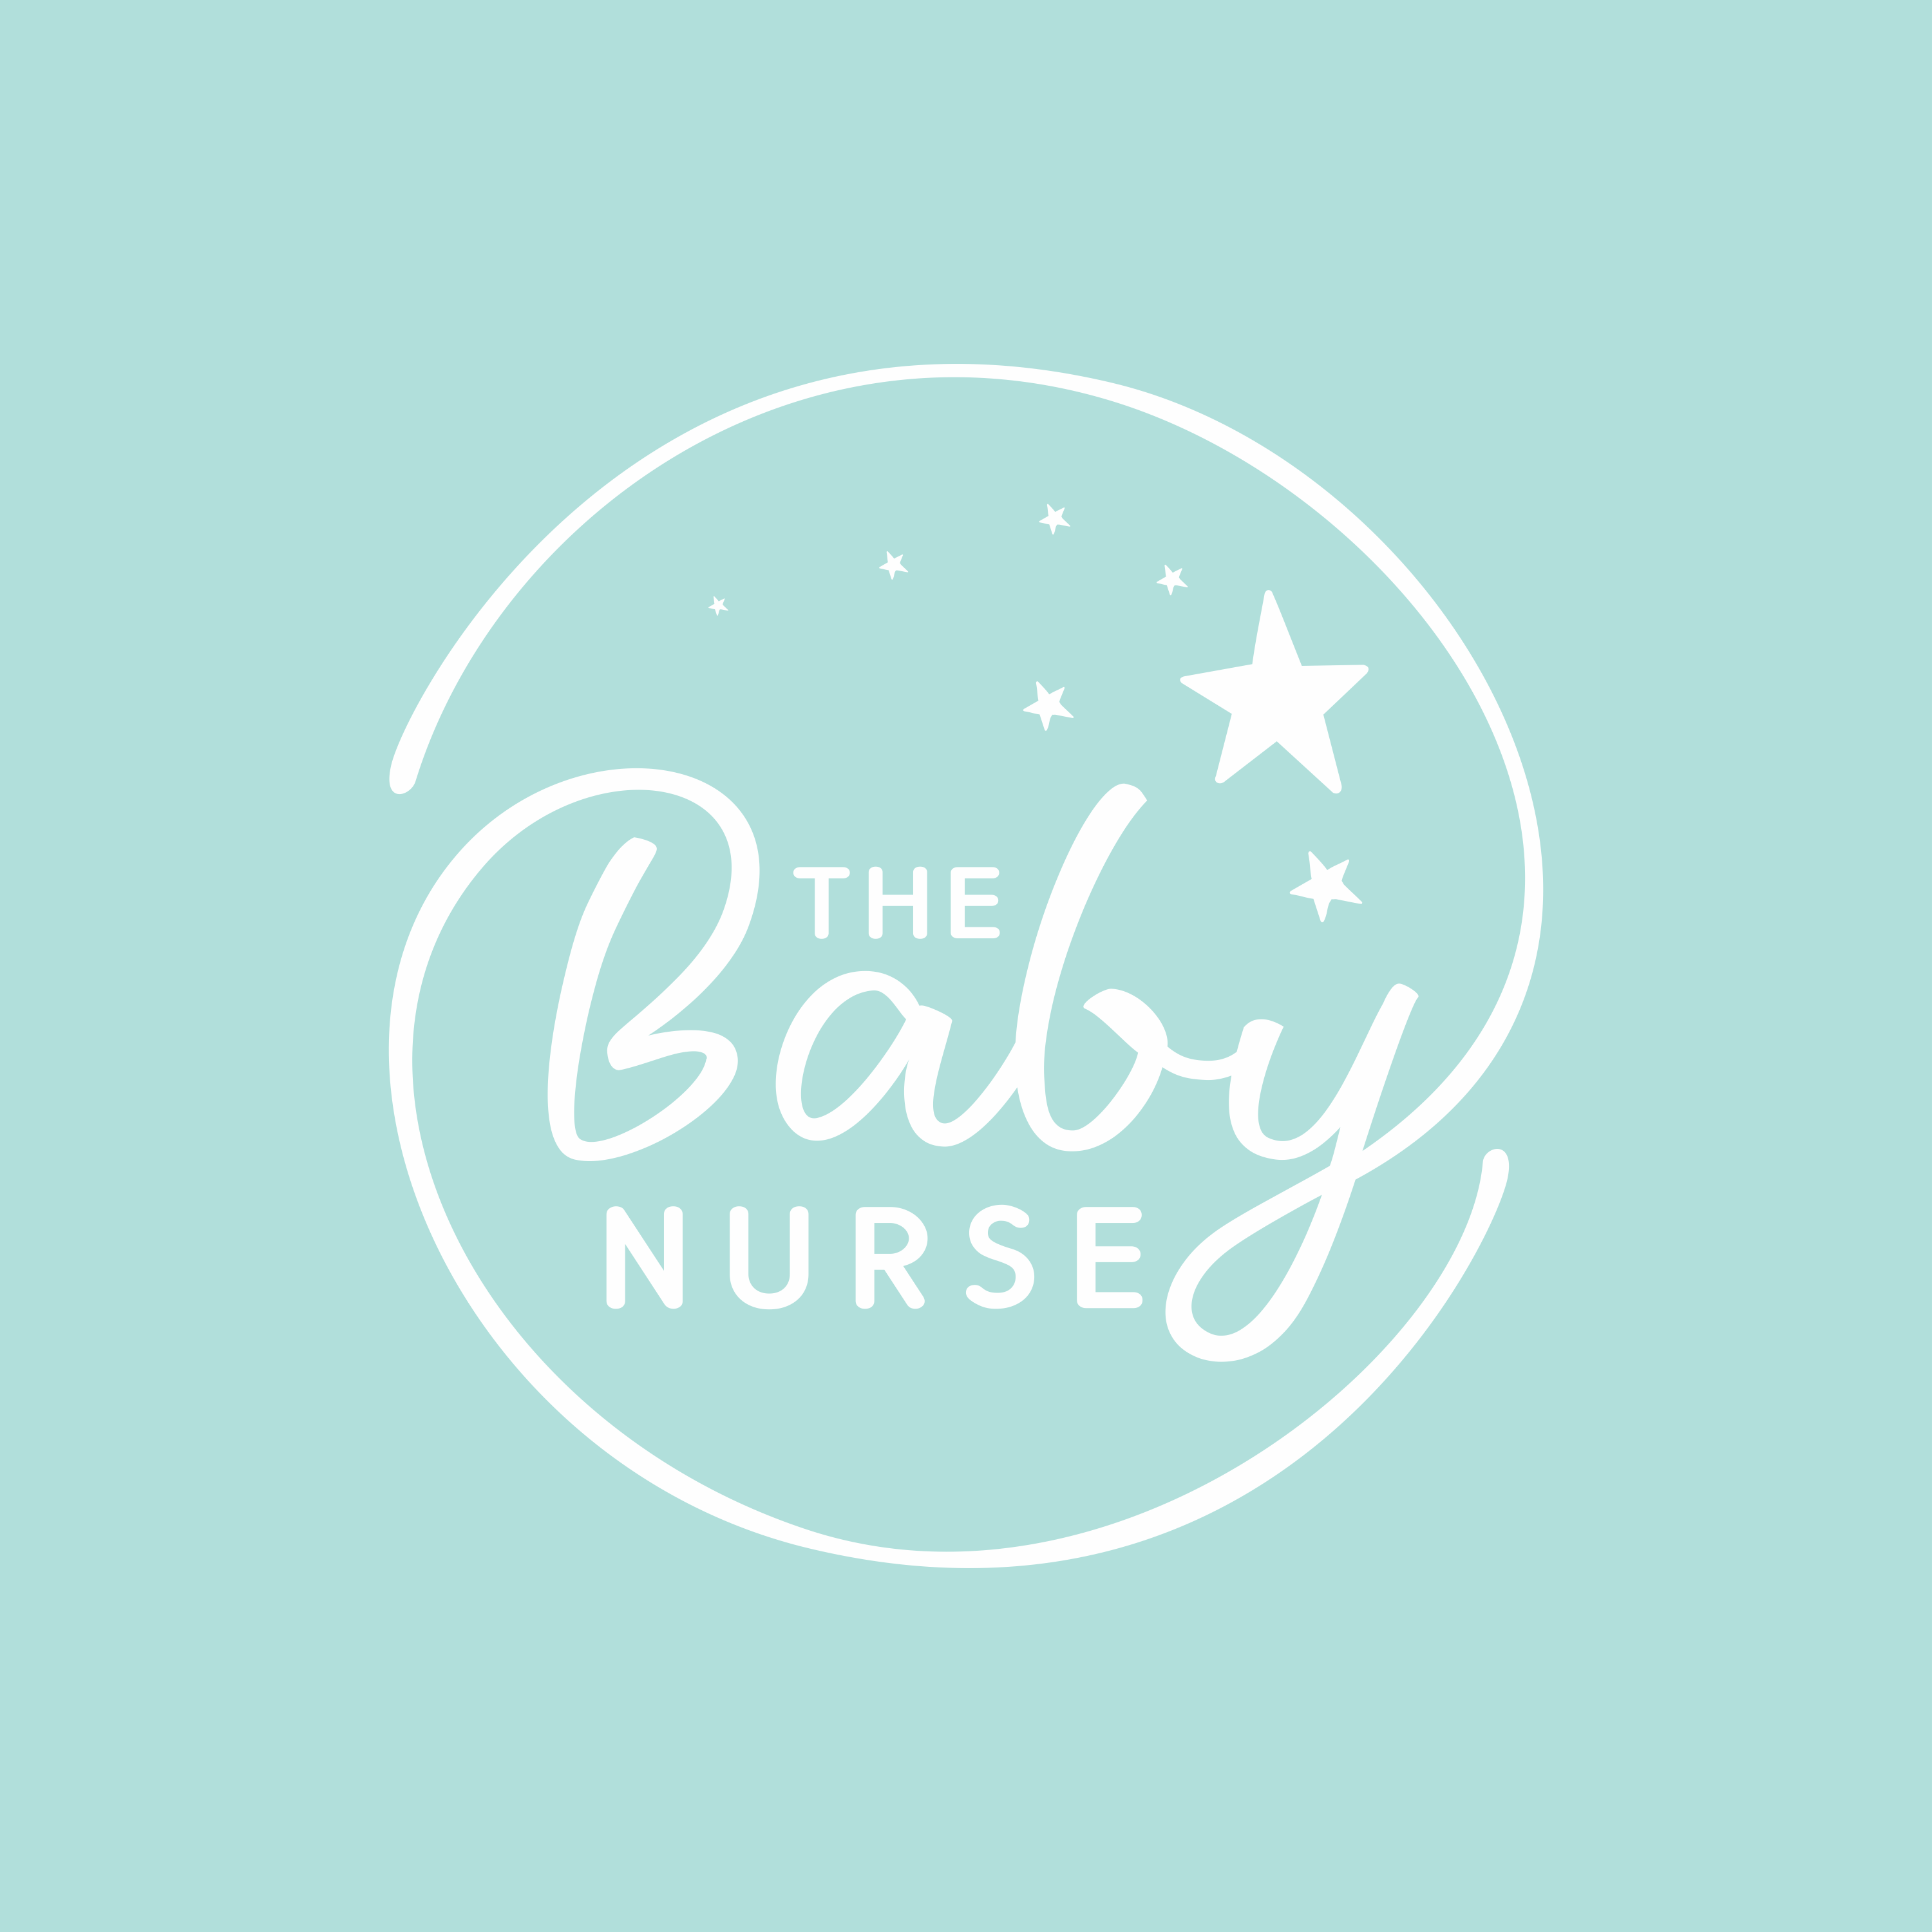 Design a comforting logo for a private newborn nurse helping moms thrive instead of survive